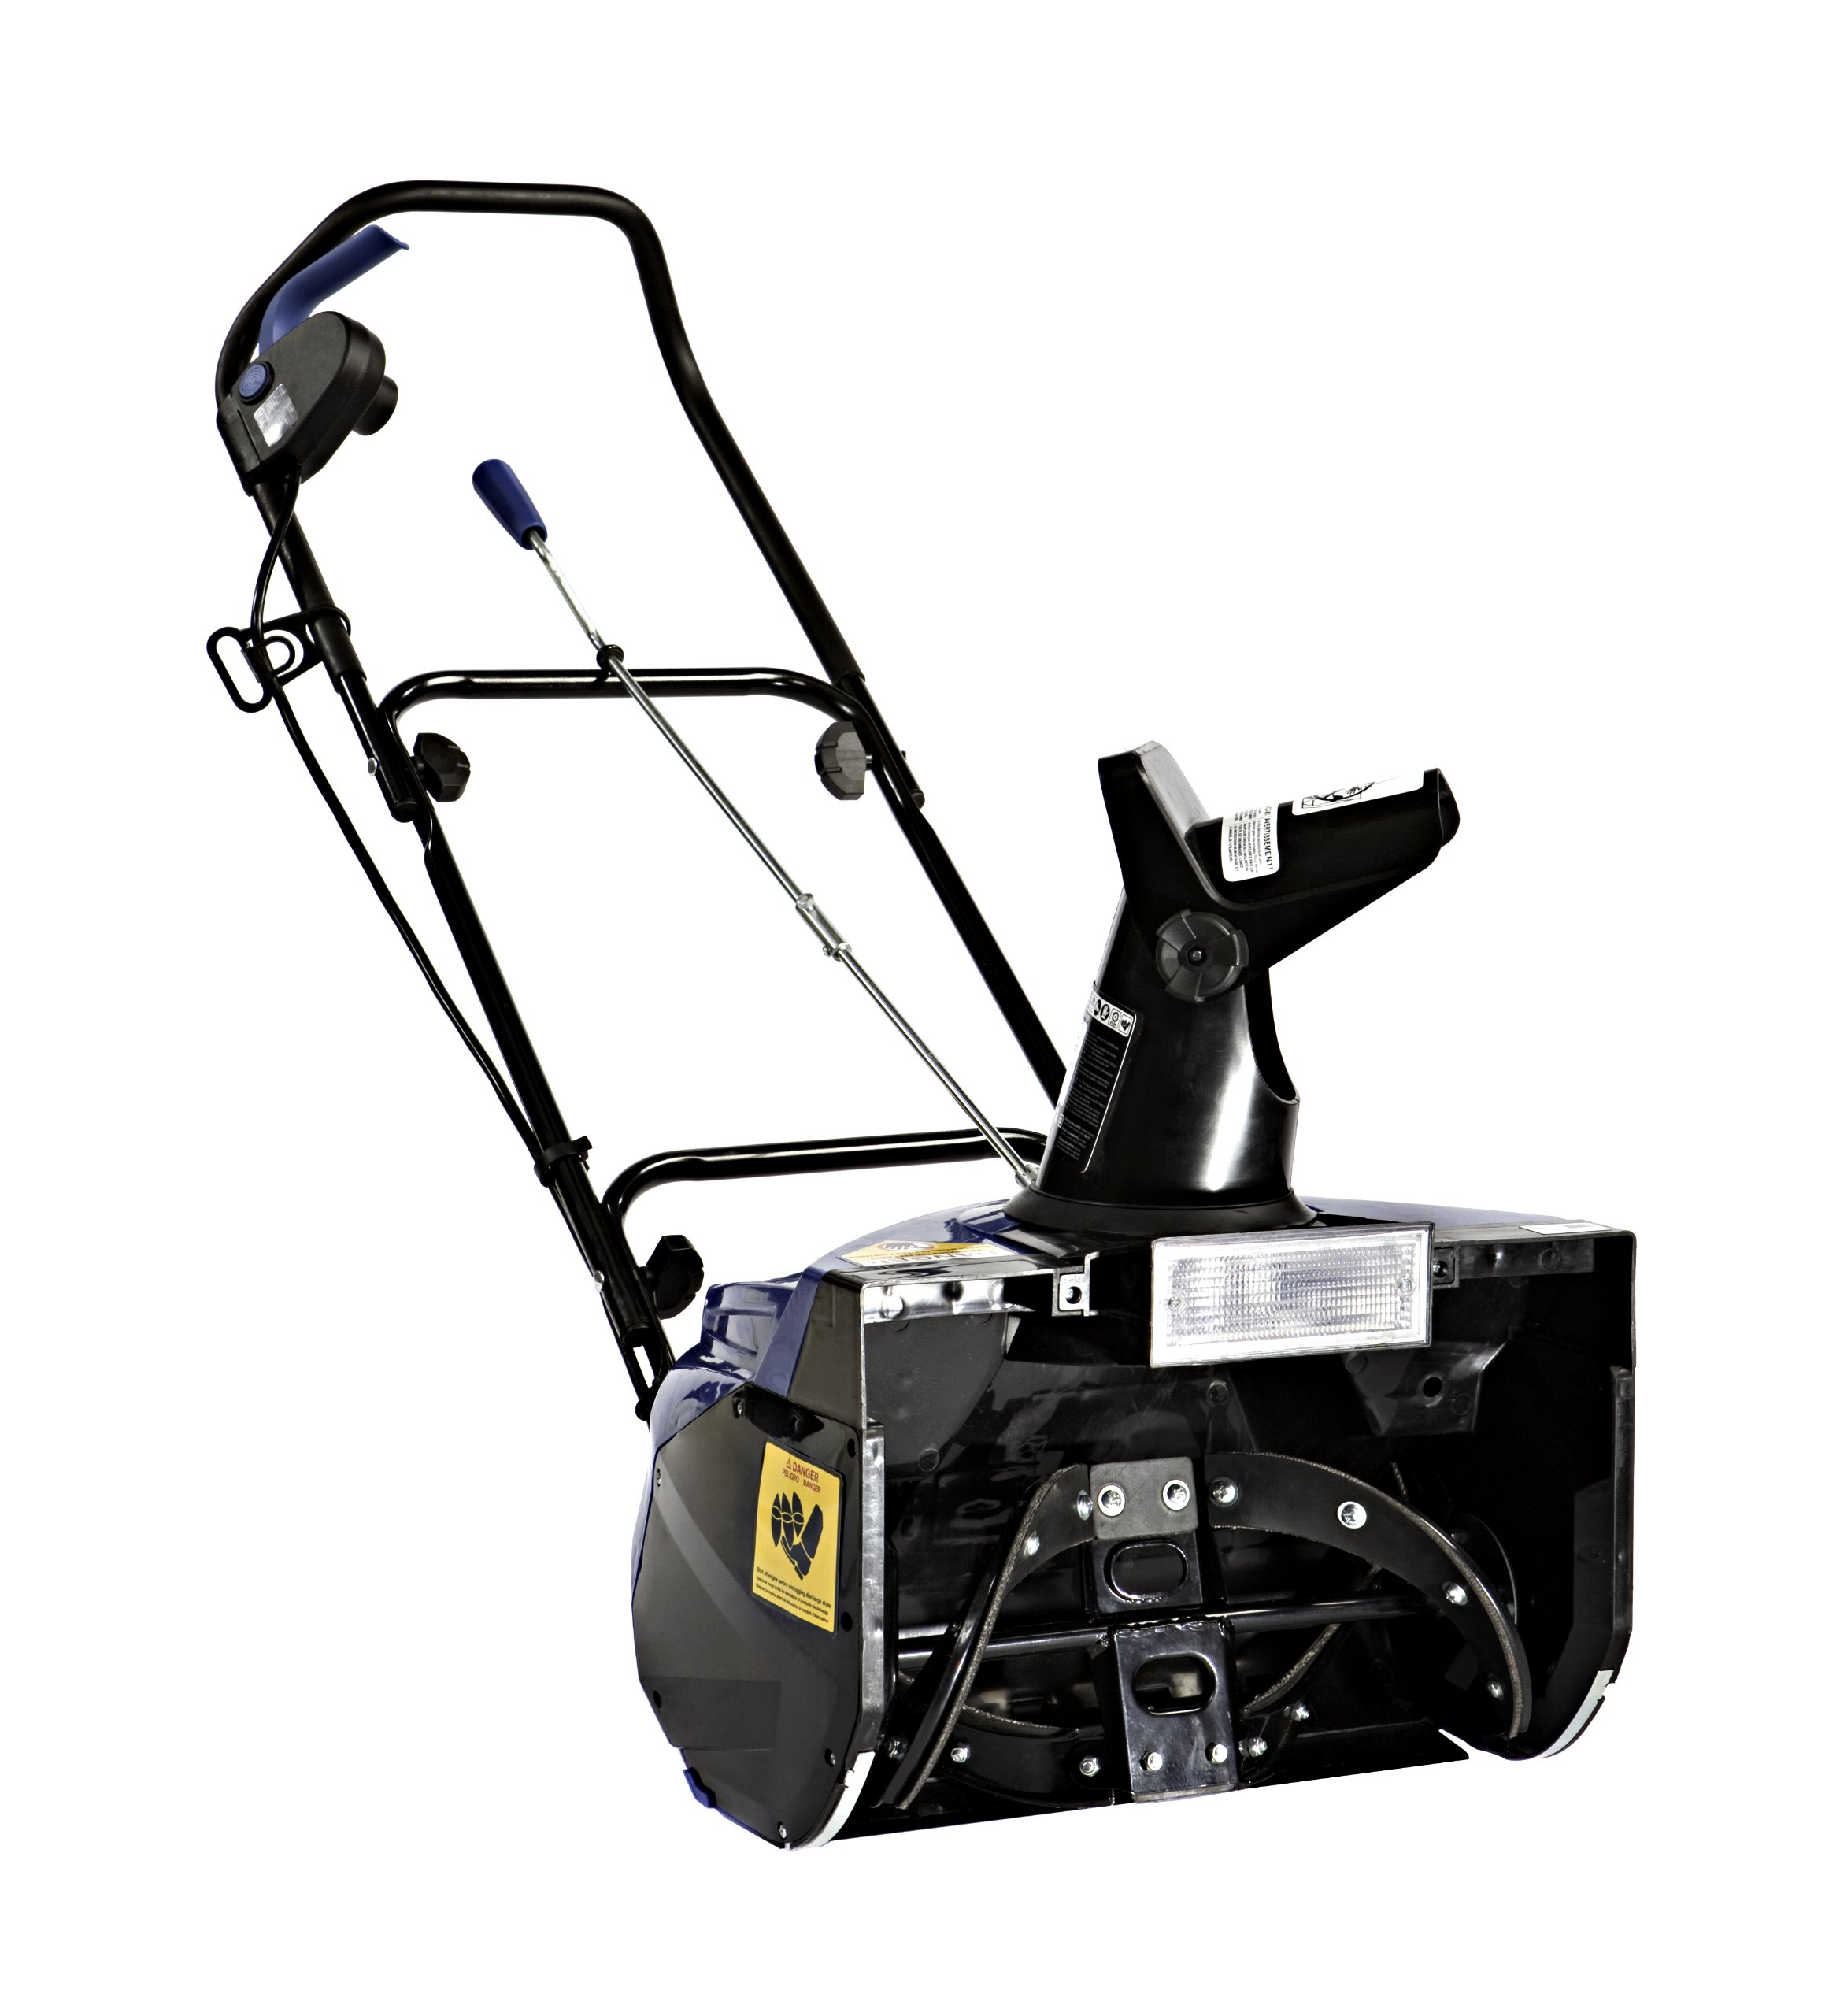 Snow Joe SJ621-RM Factory Refurbished 18-Inch 13.5-Amp Electric Snow Thrower With Headlight